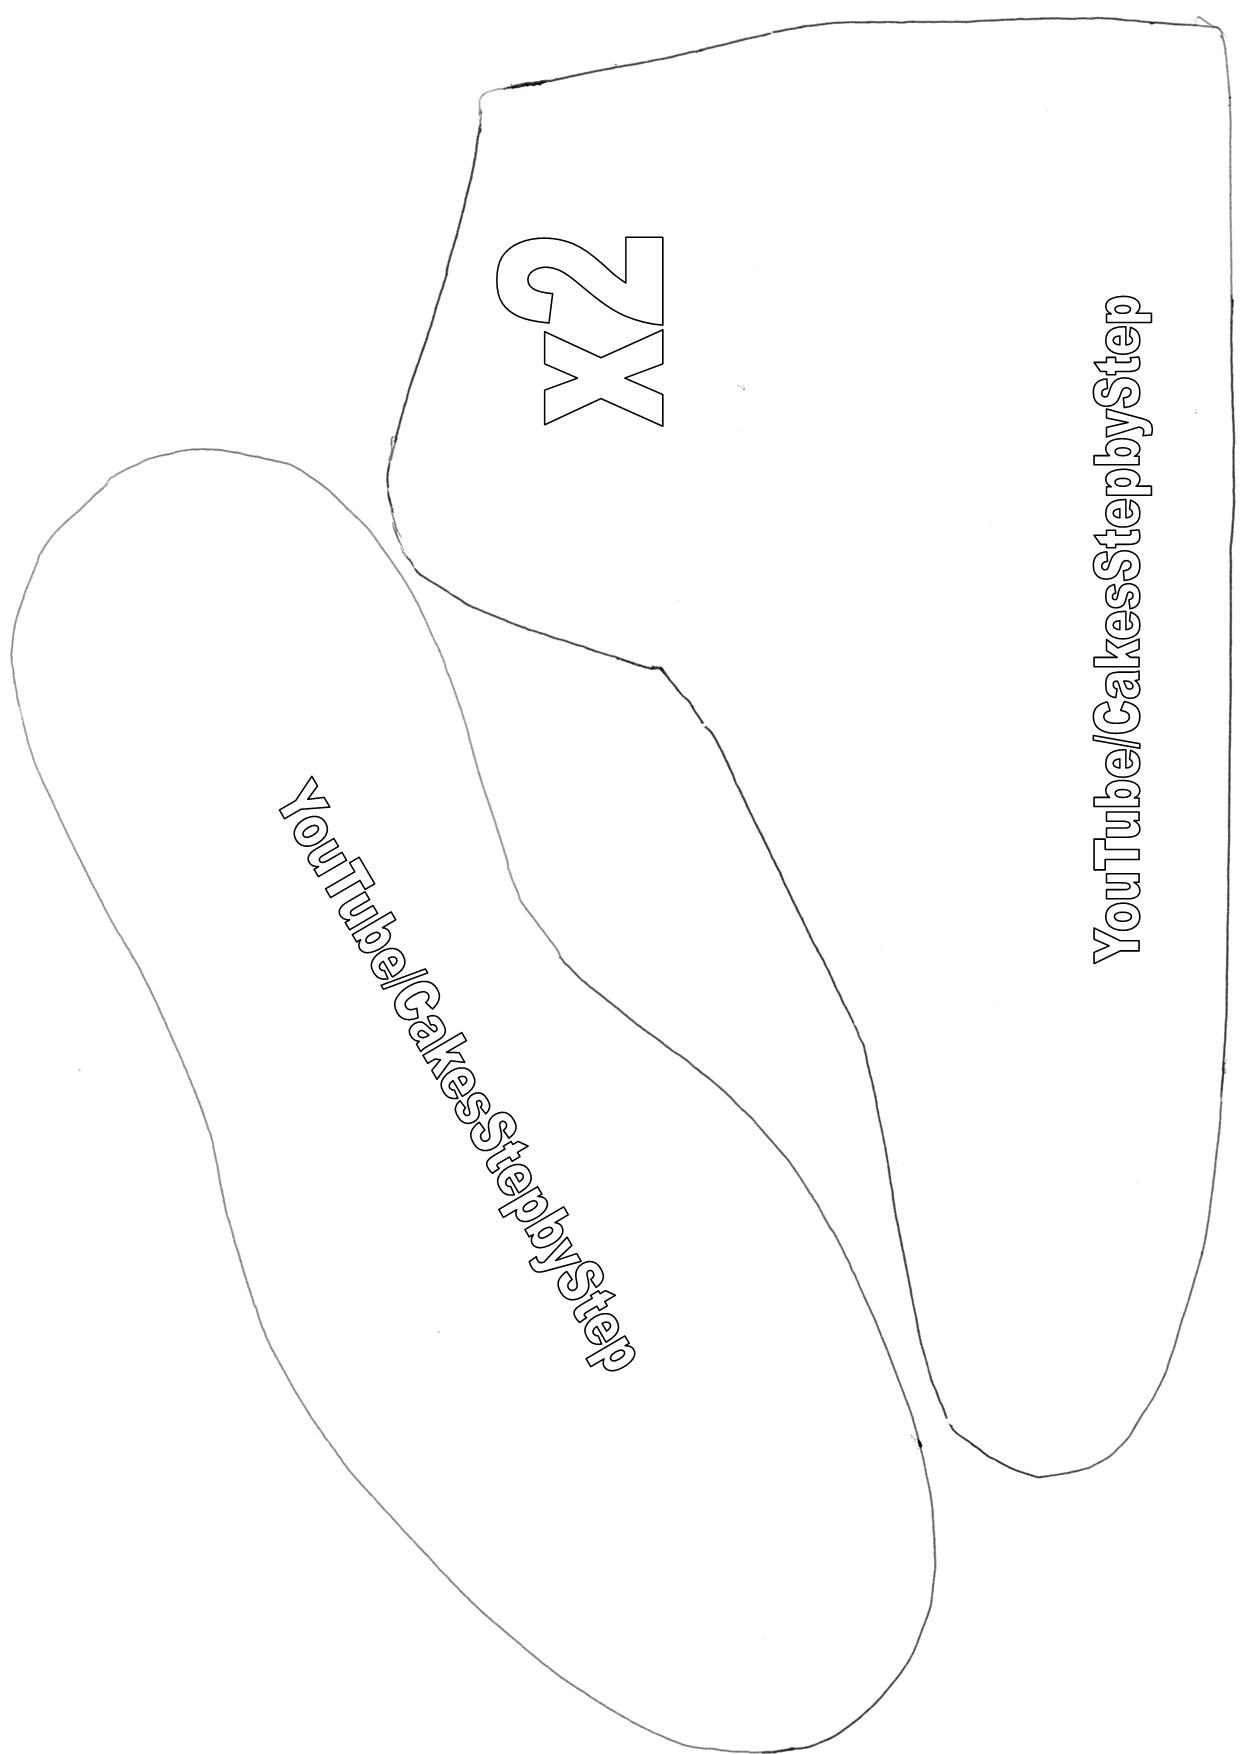 picture relating to Sneaker Template Printable named No cost Cake Templates - Welcome in the direction of CakesStepbyStep.